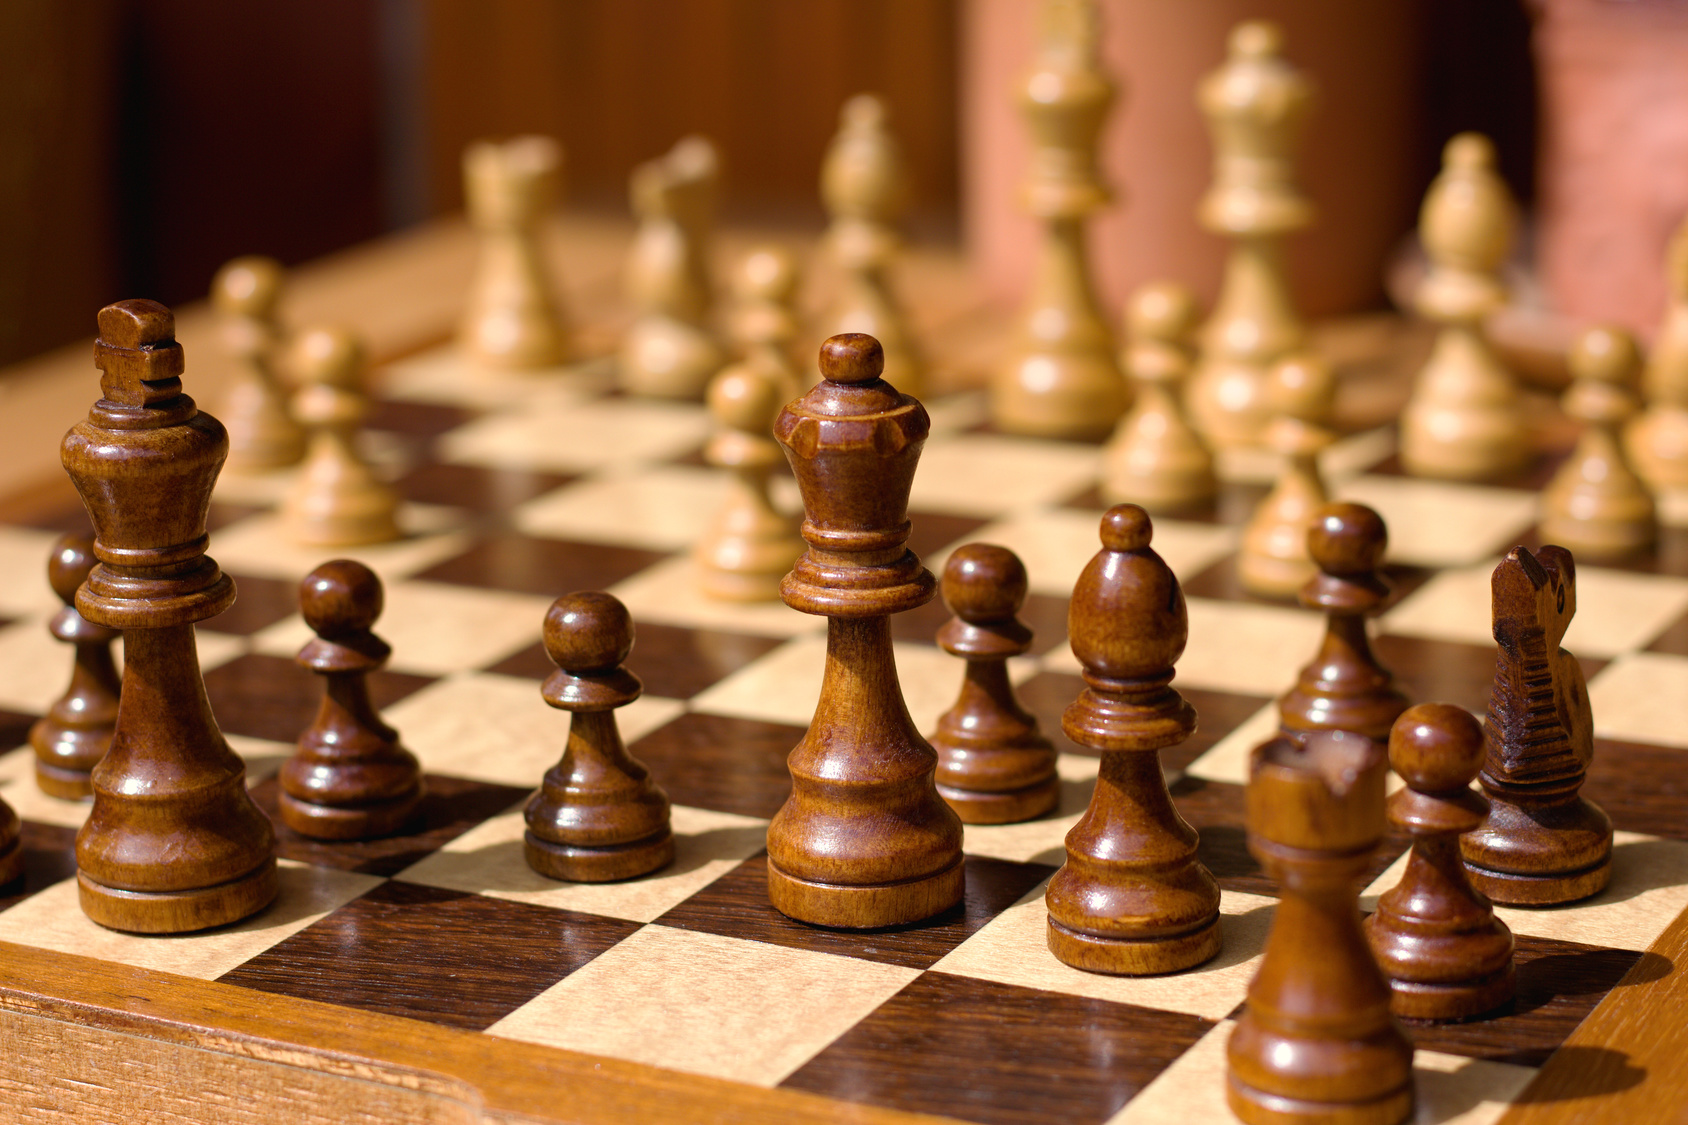 wooden chess pieces on a chessboard outdoor at the sunny day, king in focus